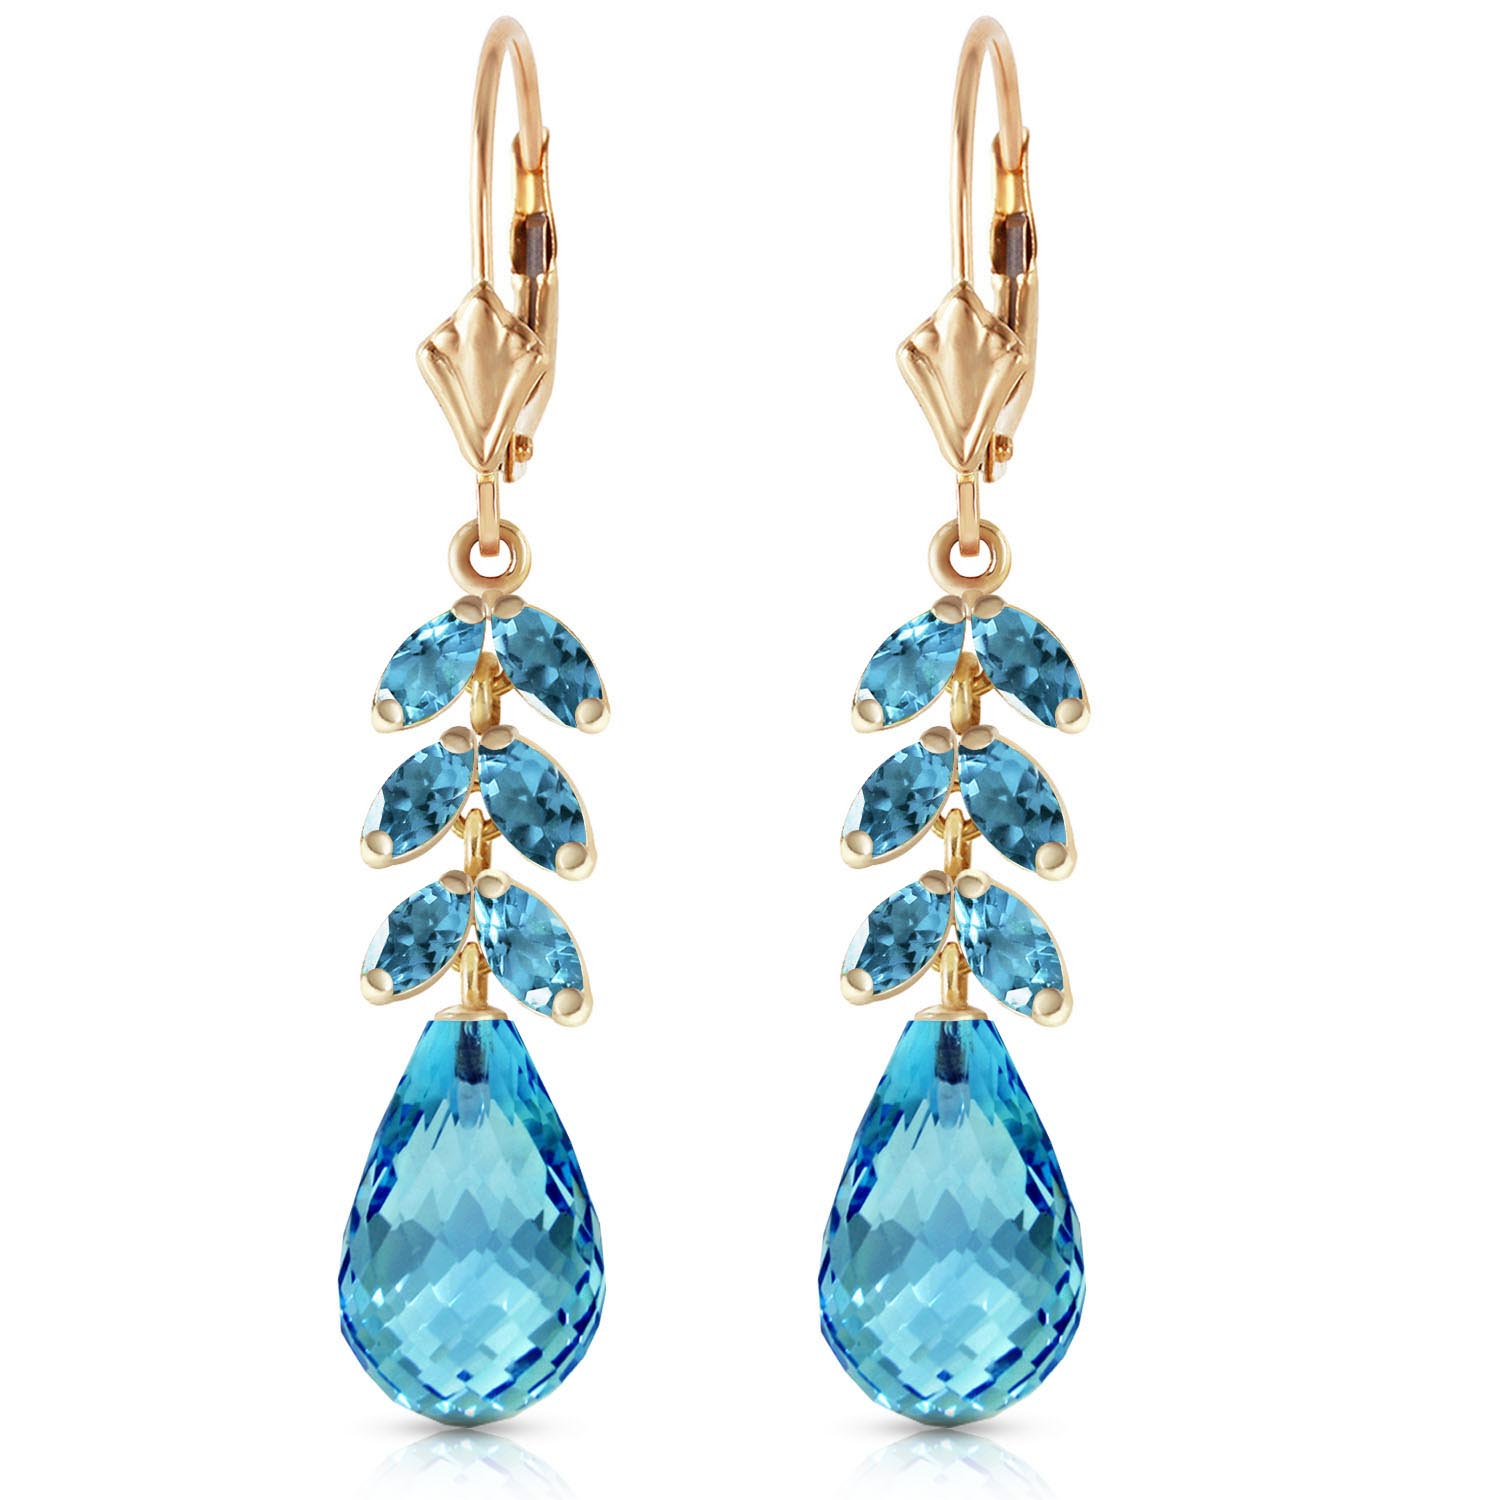 Blue Topaz Briolette Drop Earrings 11.2ctw in 9ct Gold